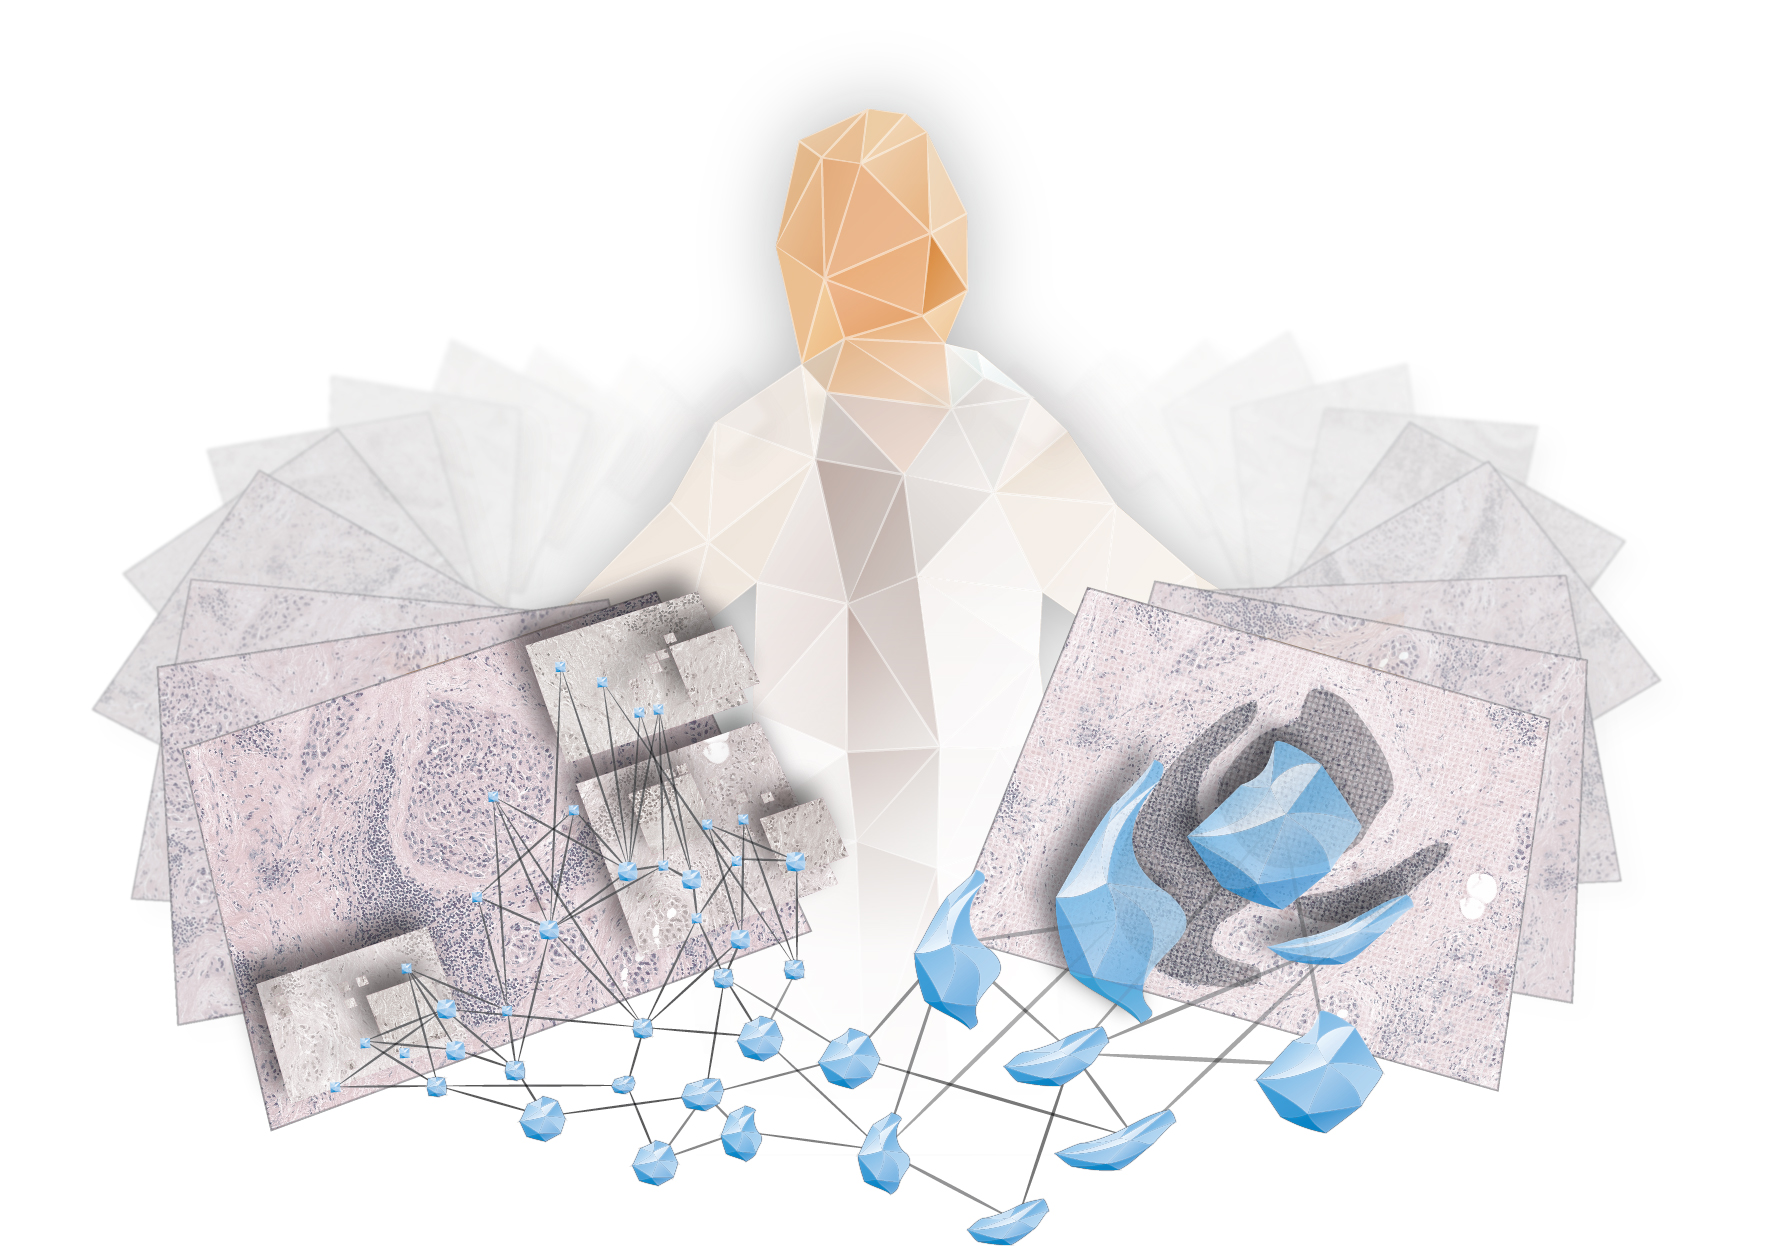 Where can i find information on how digital imaging has affected the medical field?